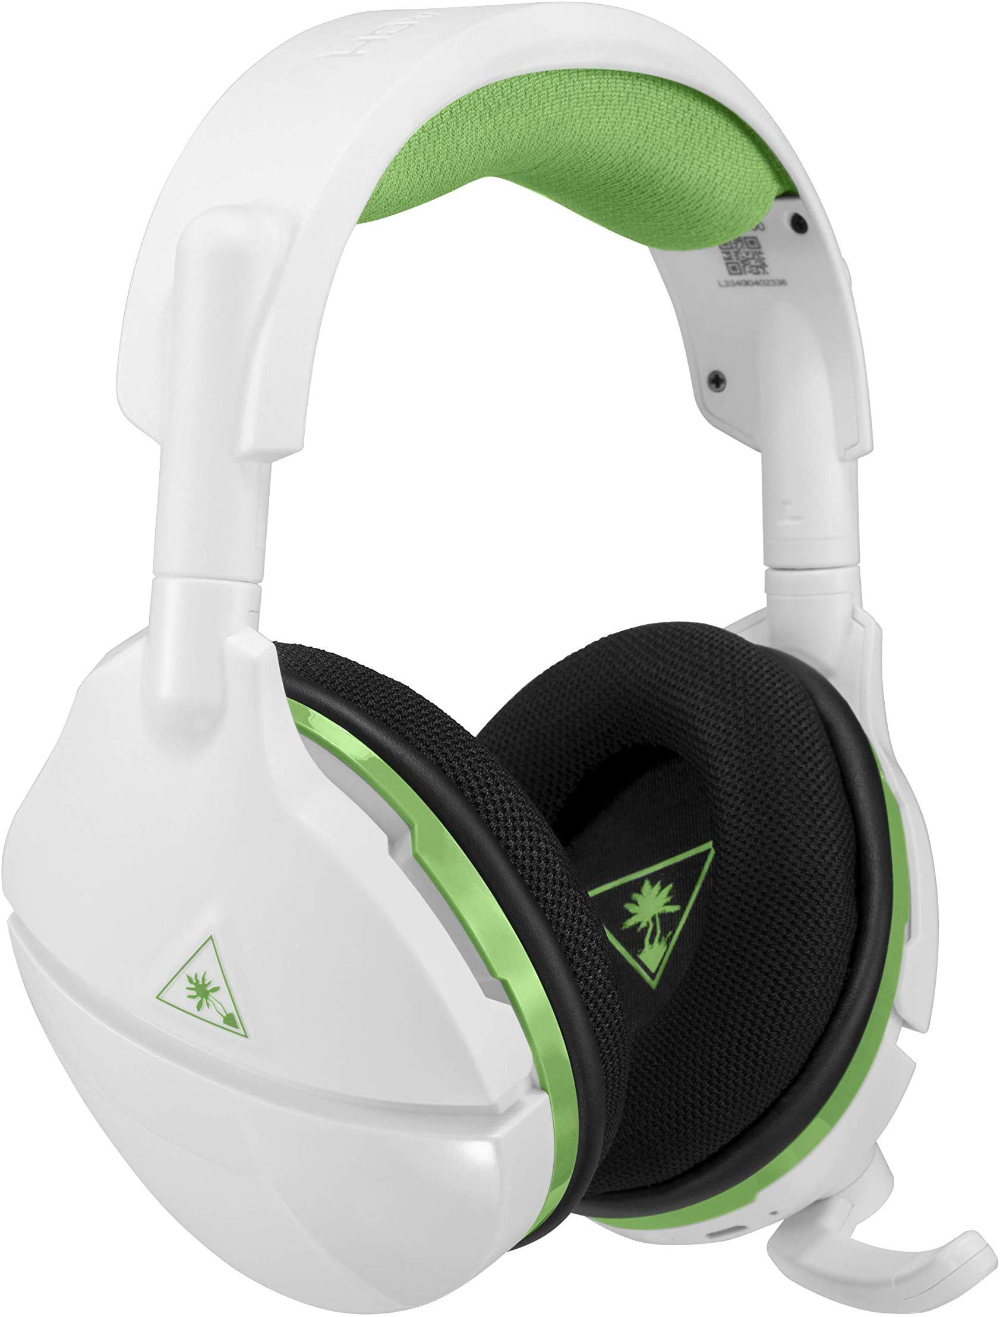 Turtle Beach Stealth 600 White Wireless Surround Sound Gaming Headset For Xbox One Xbox One Gaming Headphones In 2020 Wireless Surround Sound Gaming Headset Headset